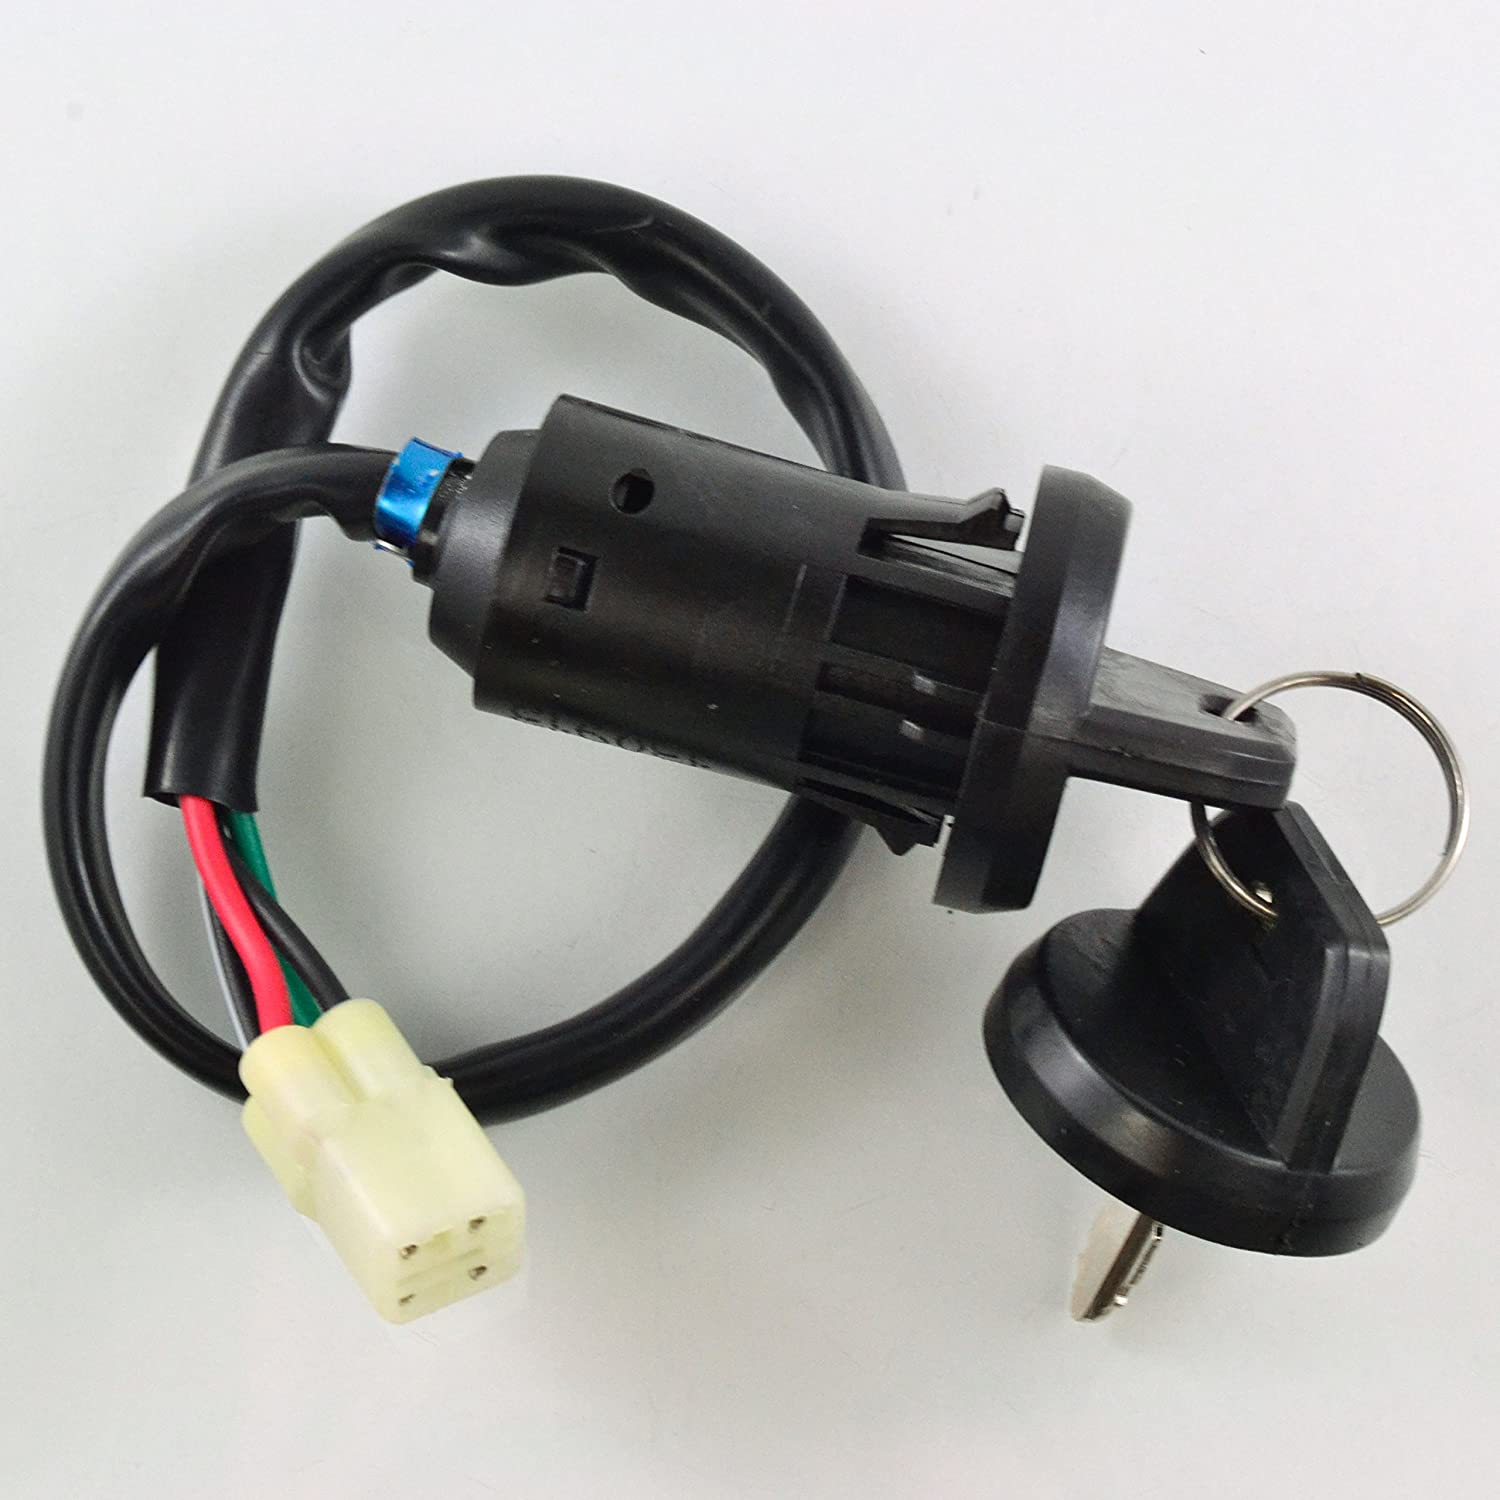 Two Position Ignition Key Switch For Honda TRX 450 TRX450R TRX450ER 2004-2014 OEM Repl.# 35100-HP1-003 RMSTATOR